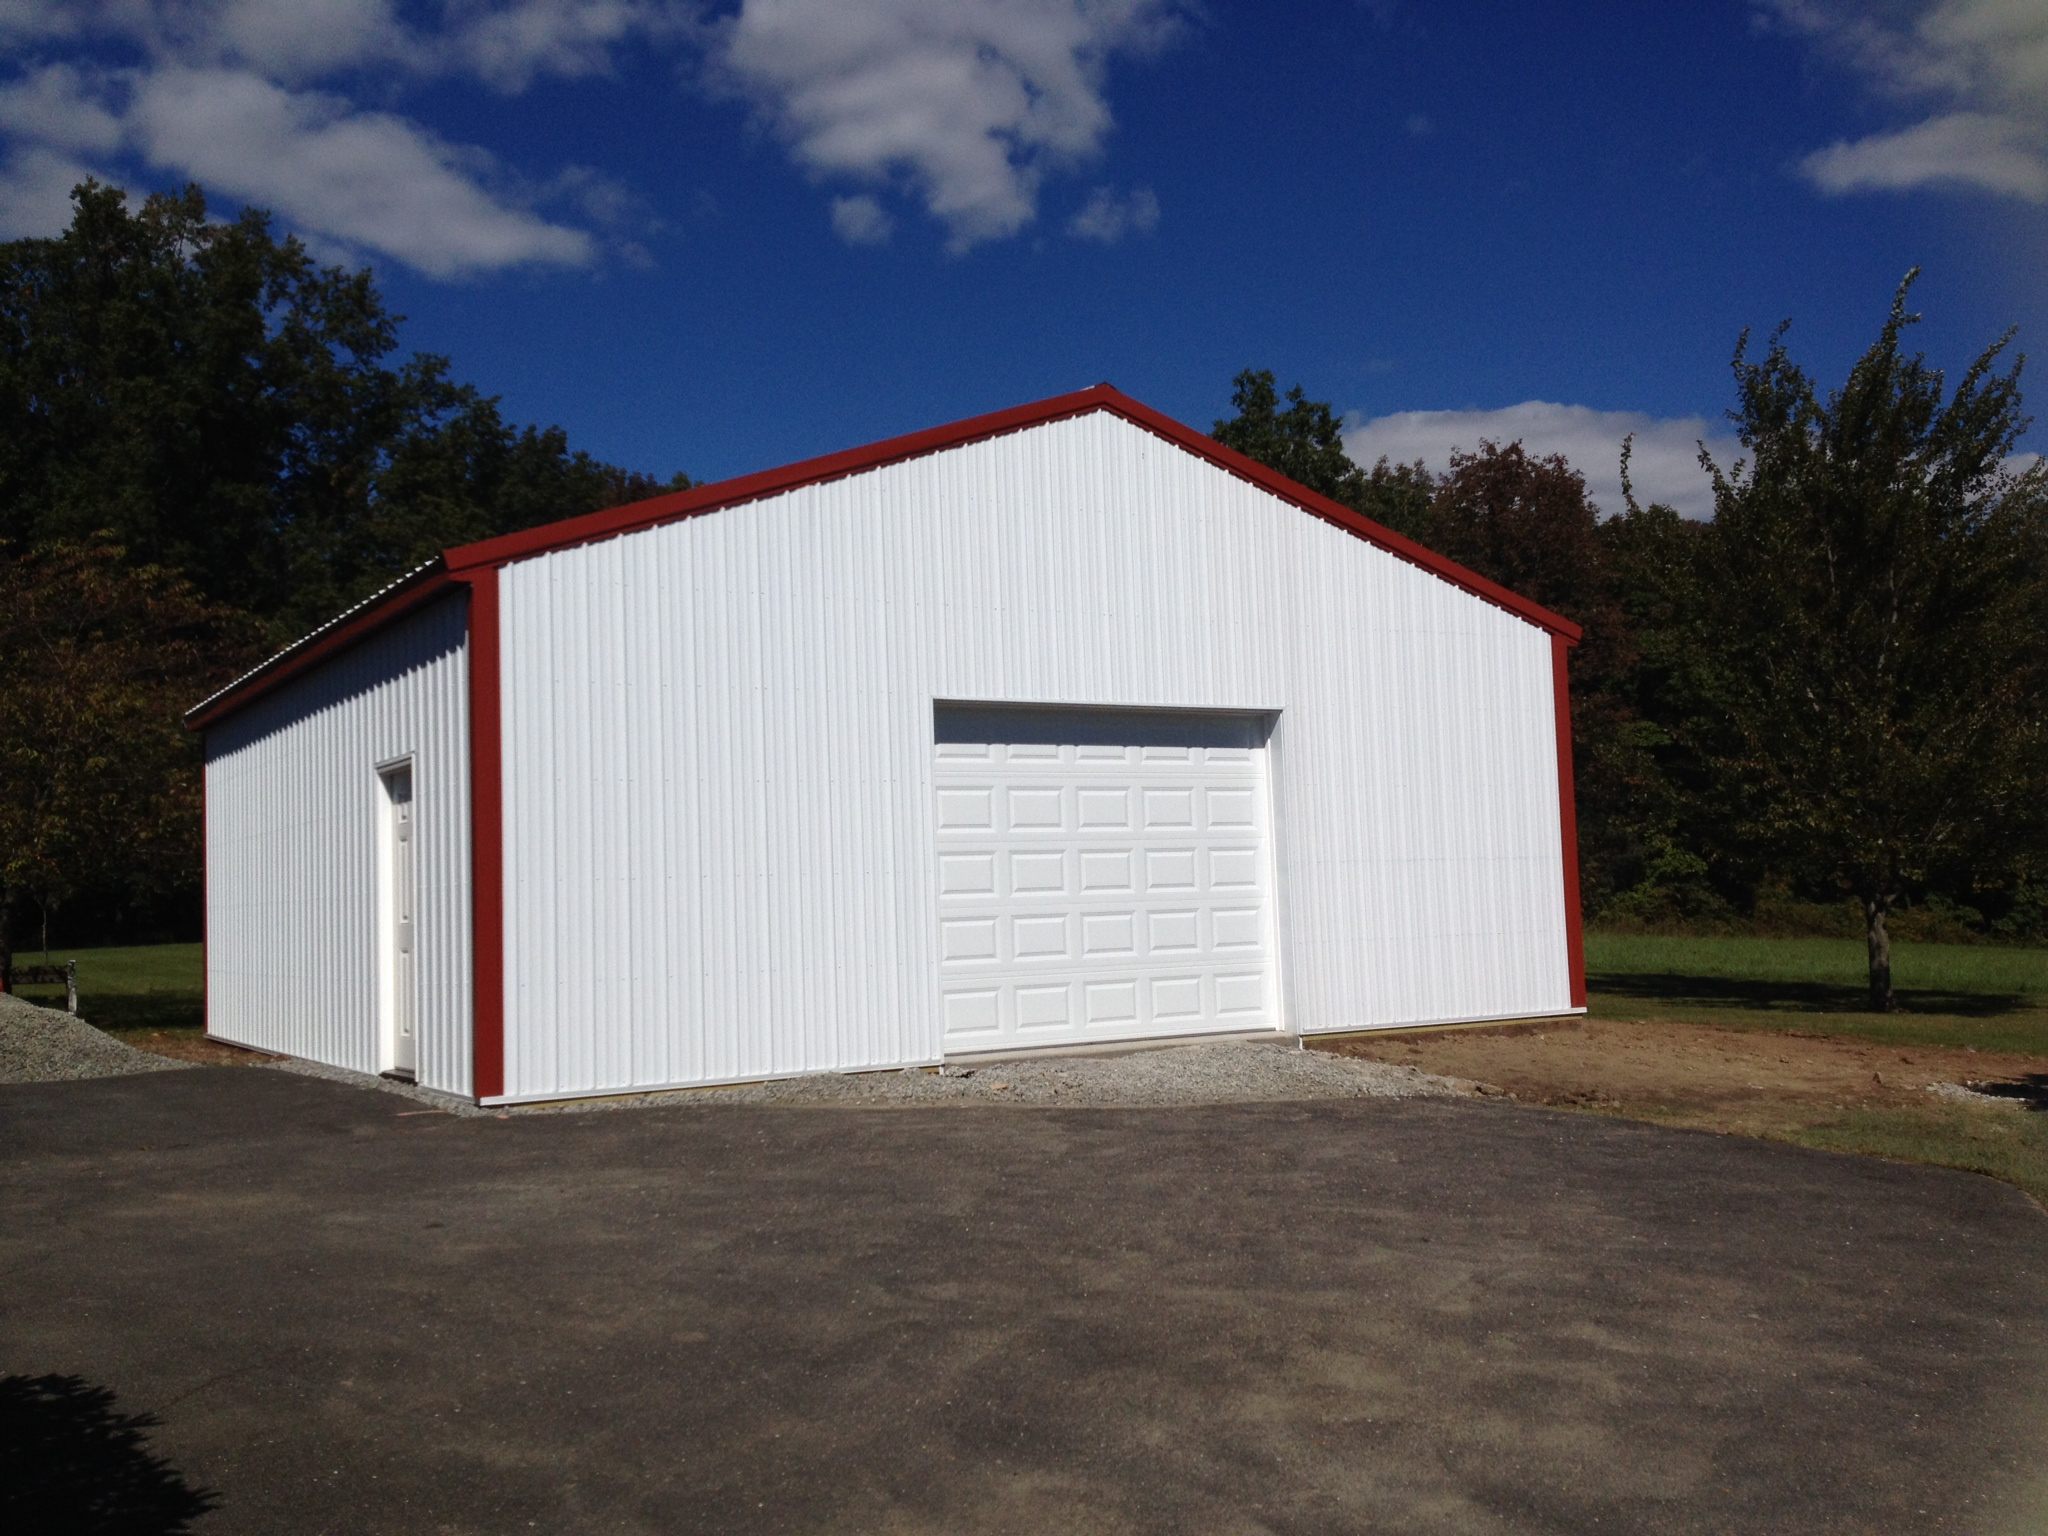 30x32 Garage with 10x8 overhead door in Coopersburg, PA